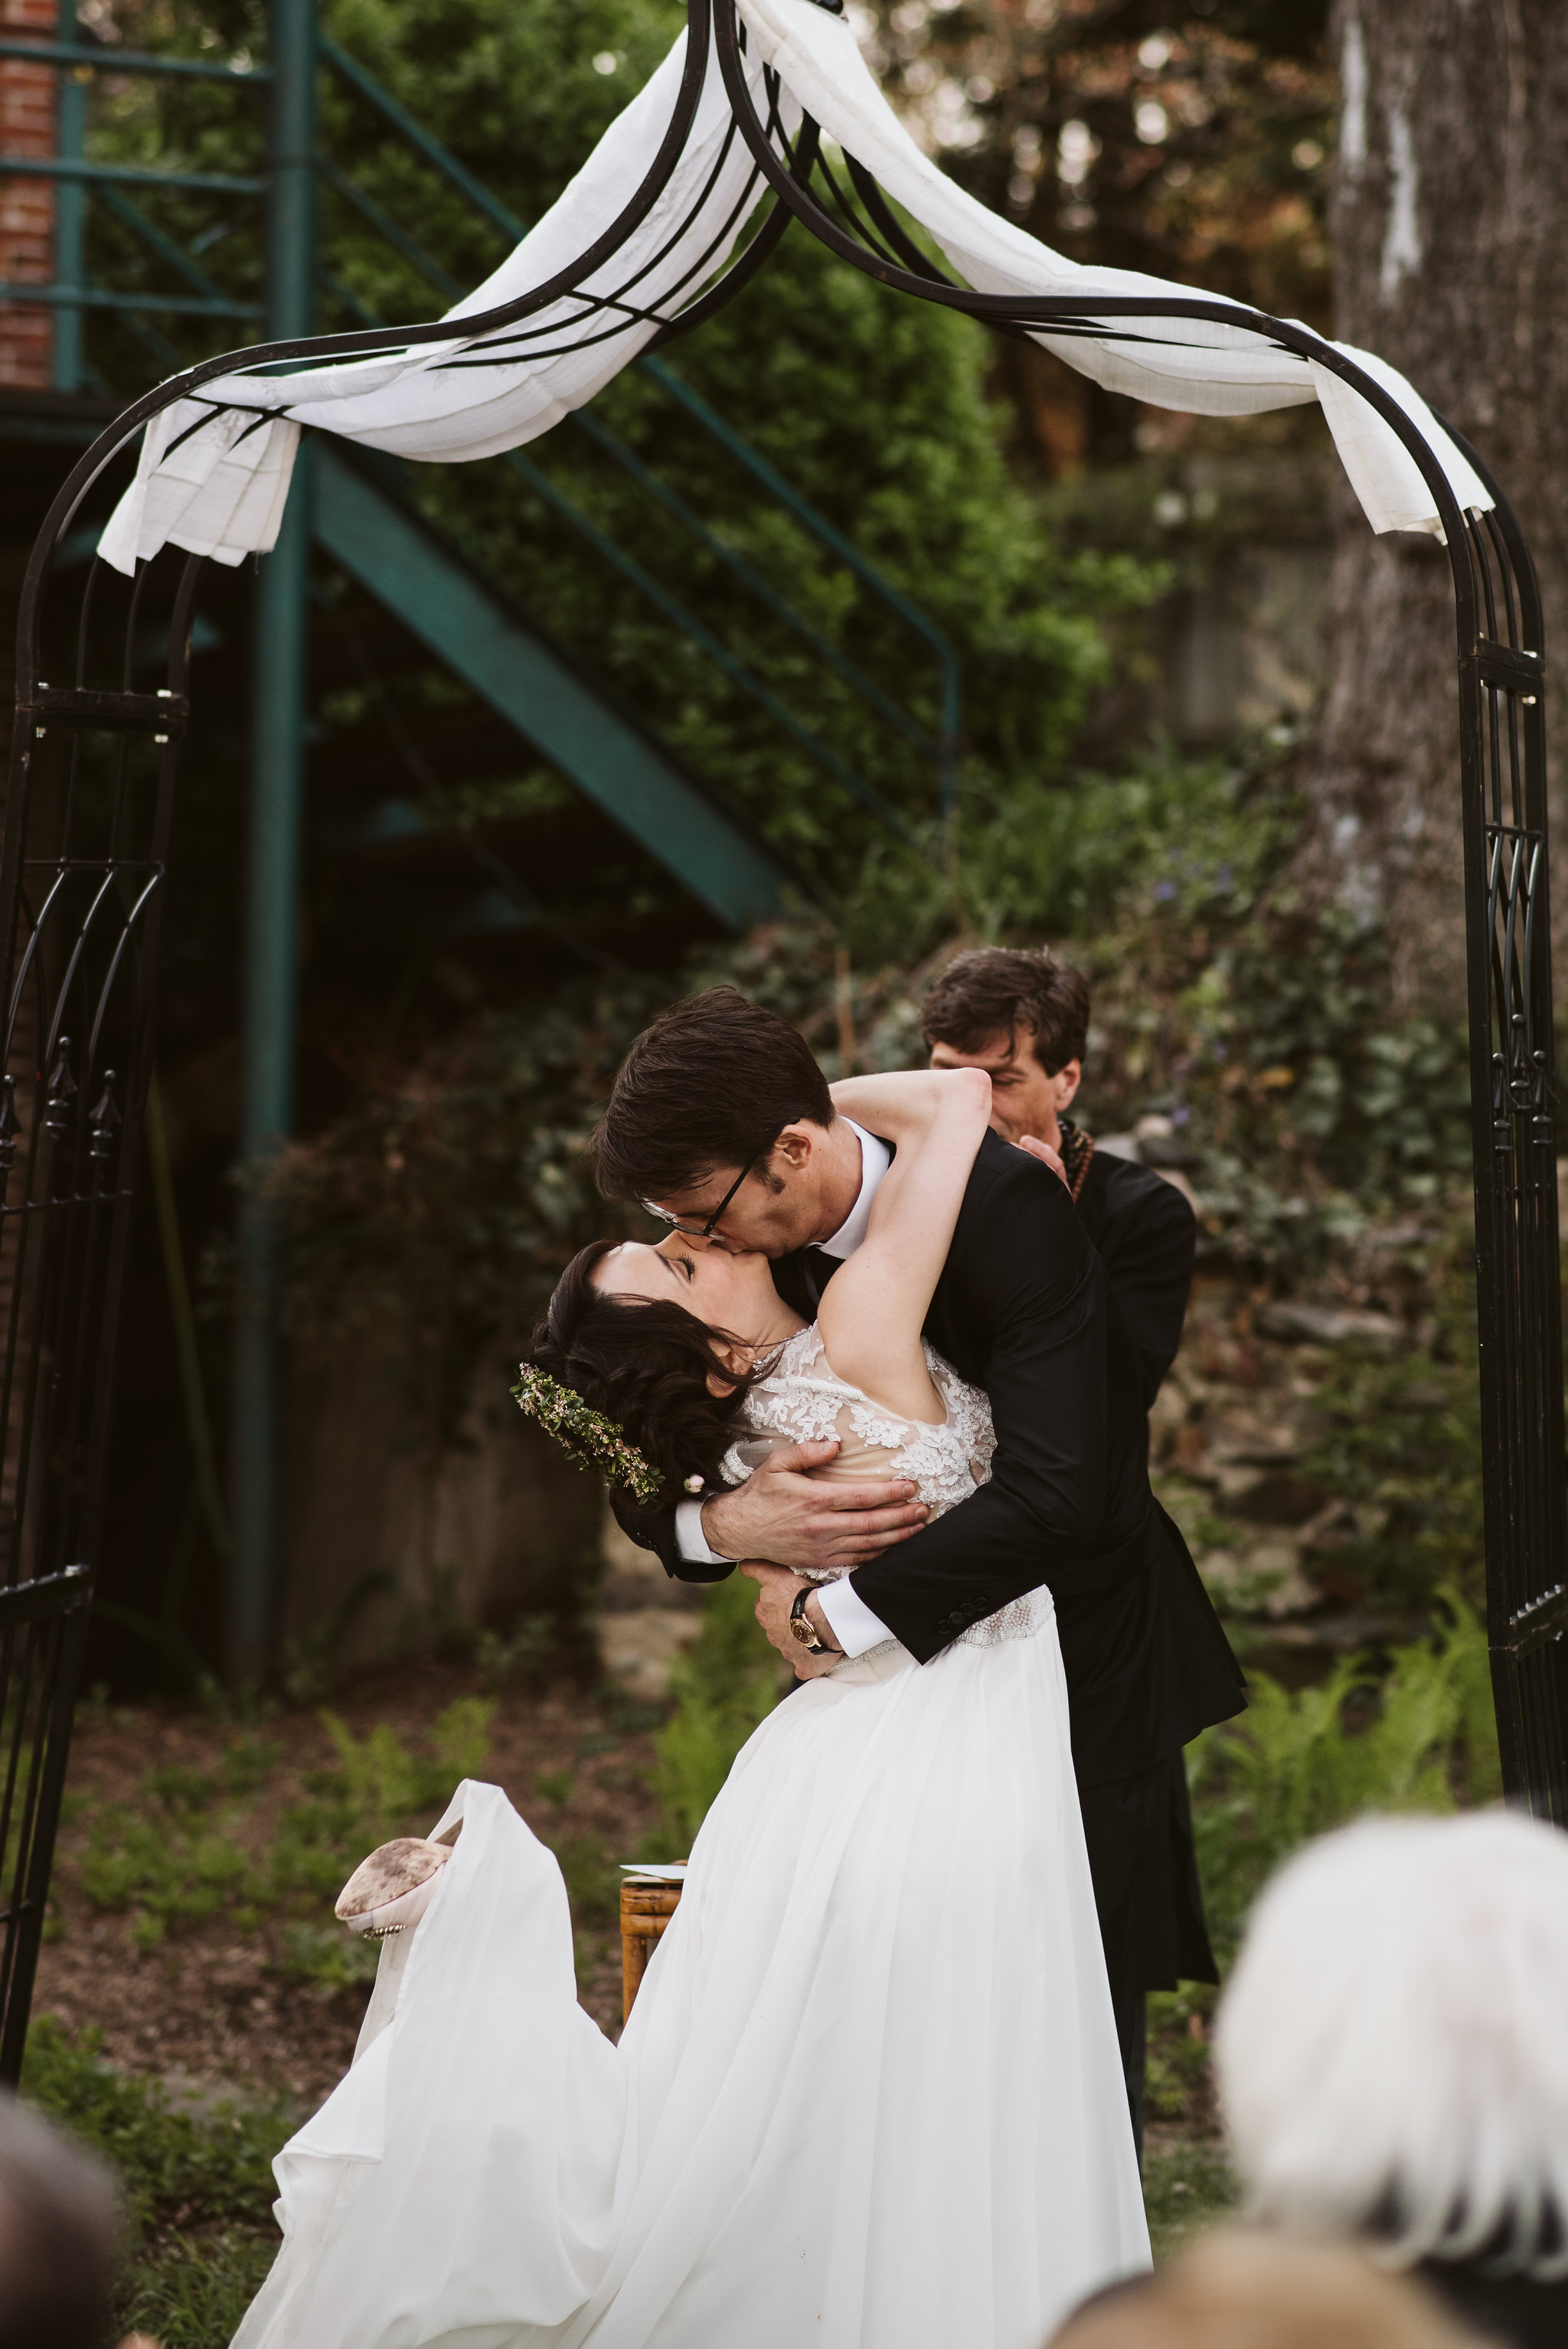 AllisonandDan'sWedding-339.jpg